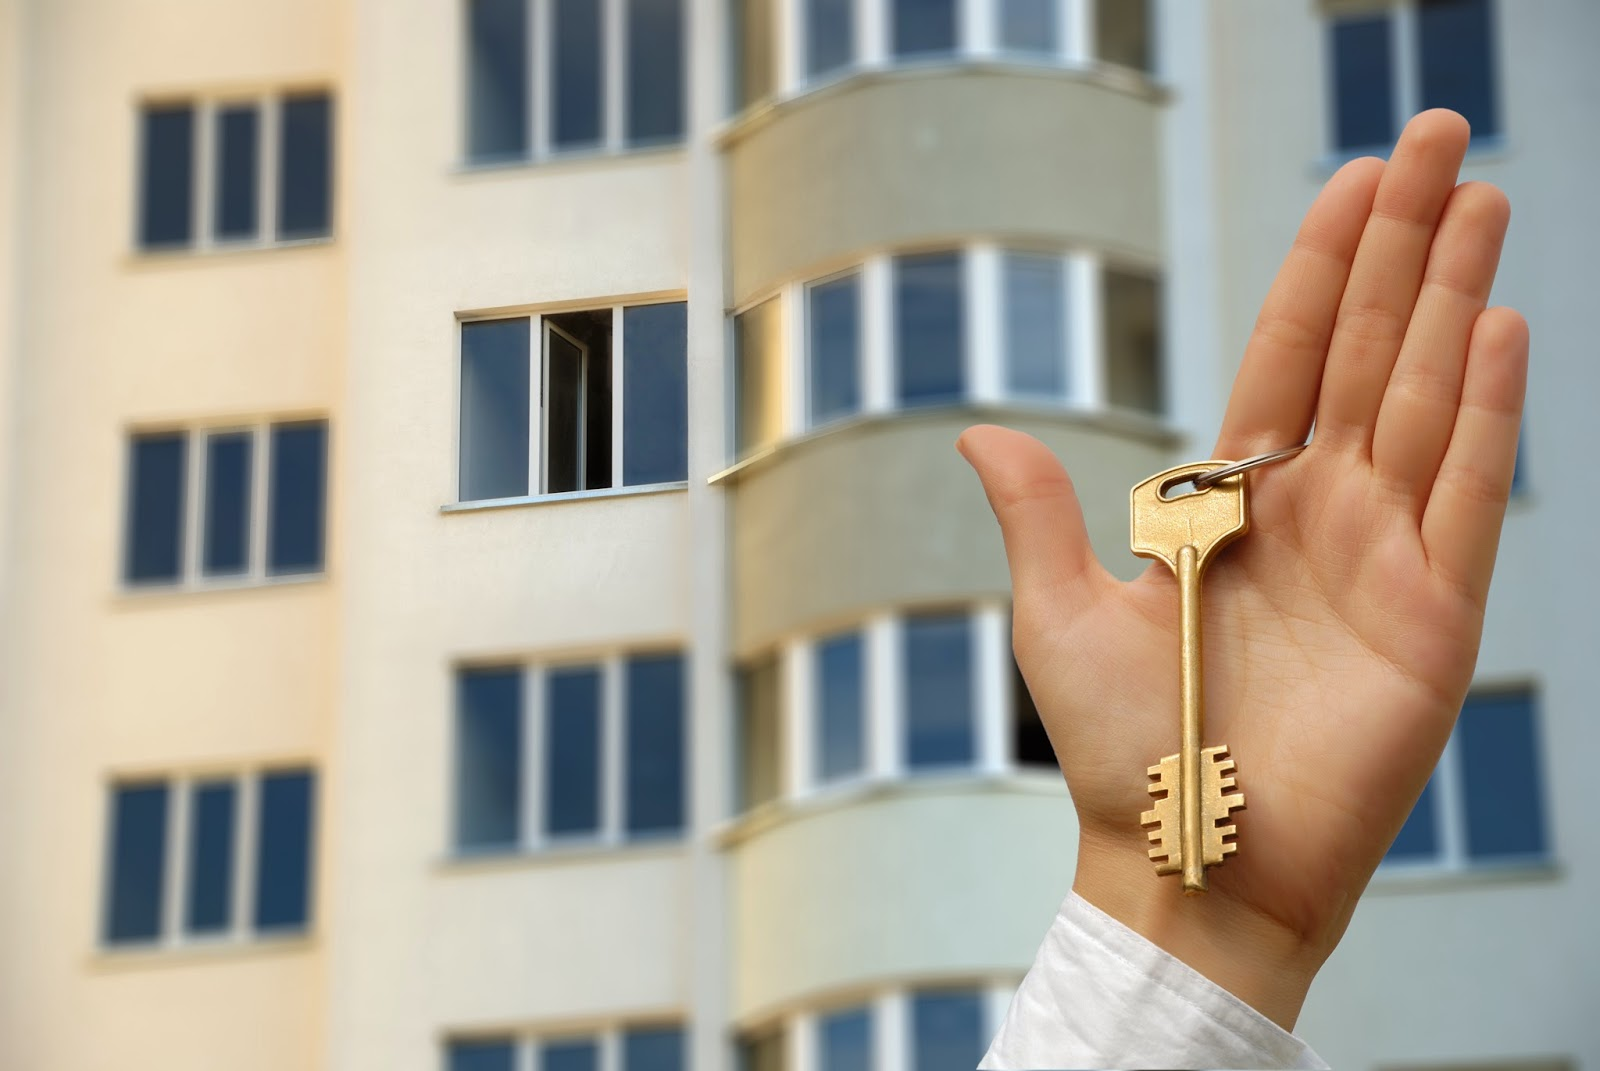 Man holding apartment master key